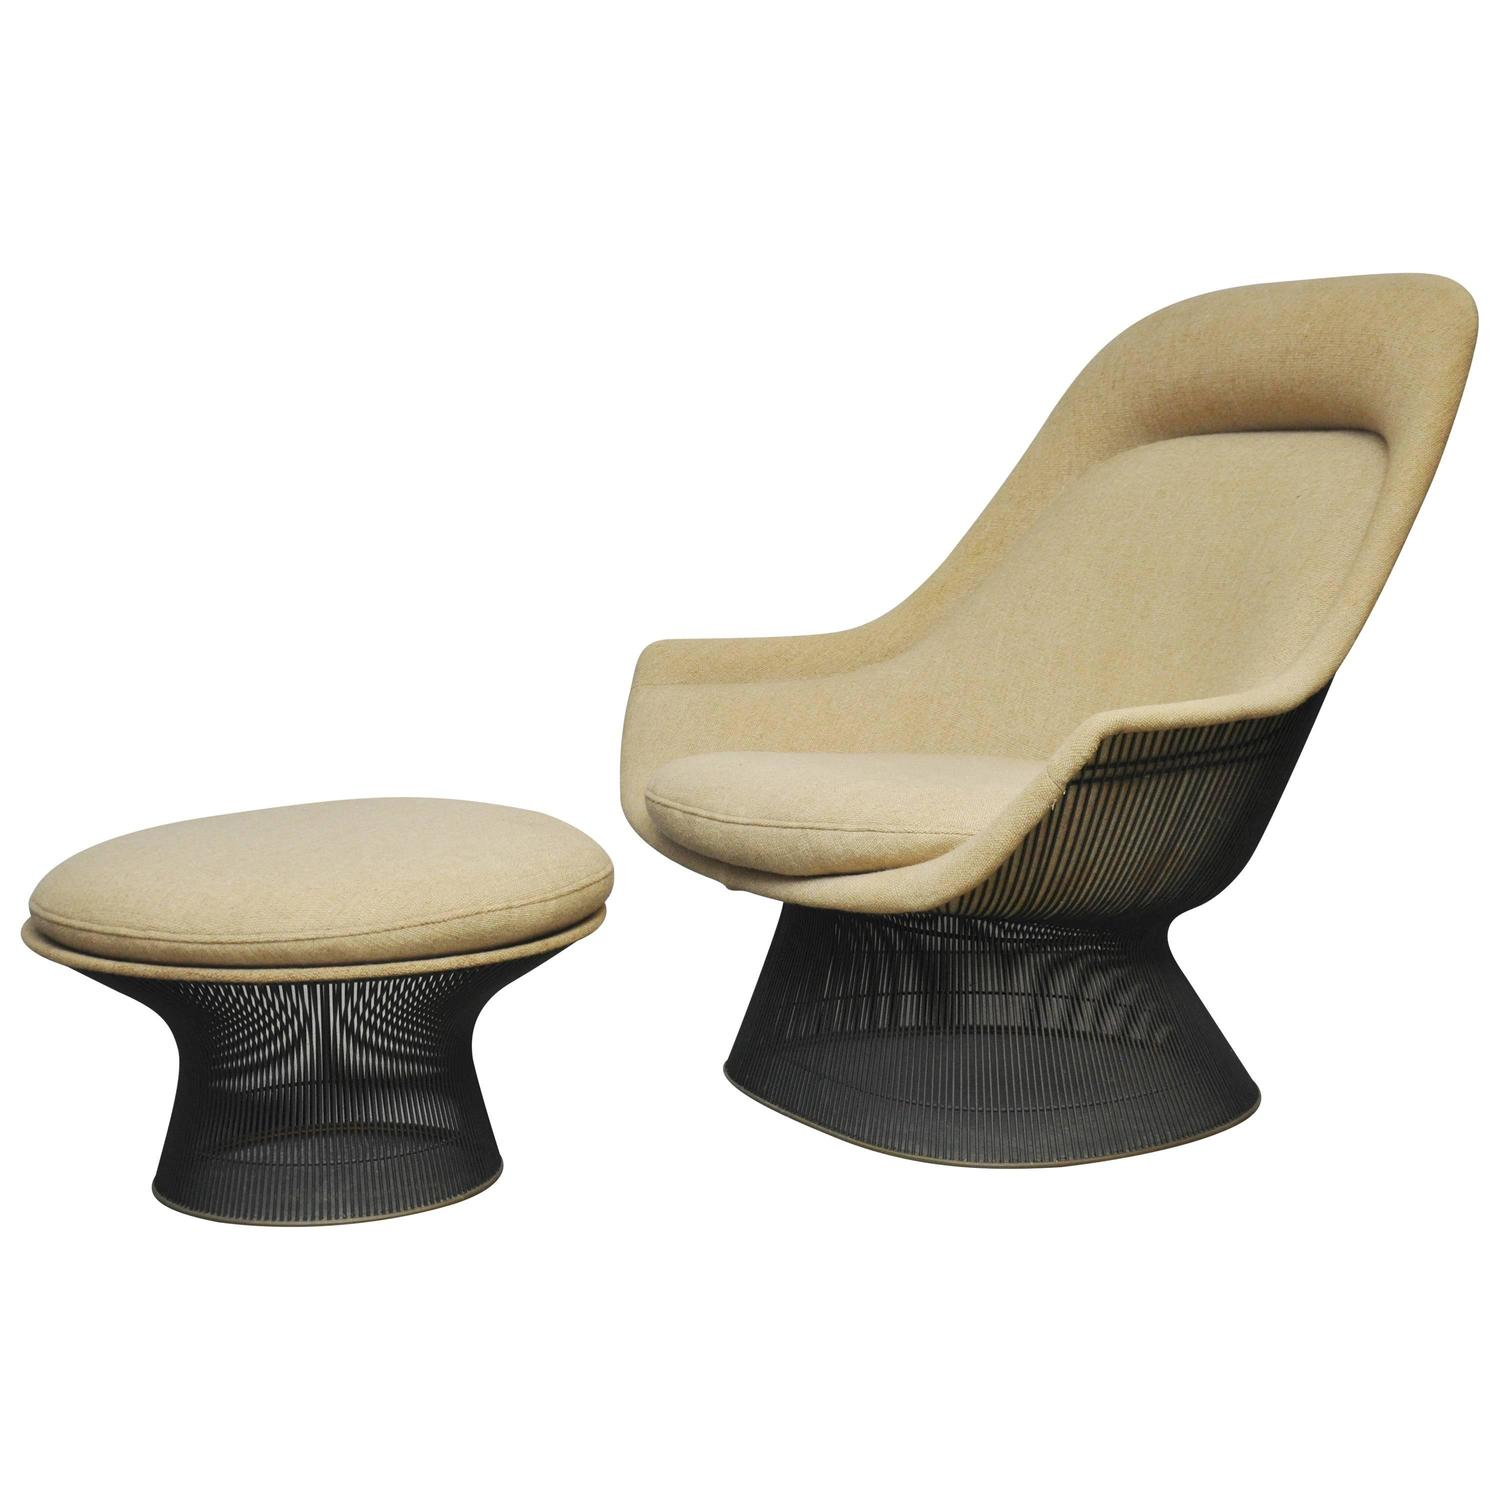 Warren platner bronze lounge chair with ottoman for knoll at 1stdibs